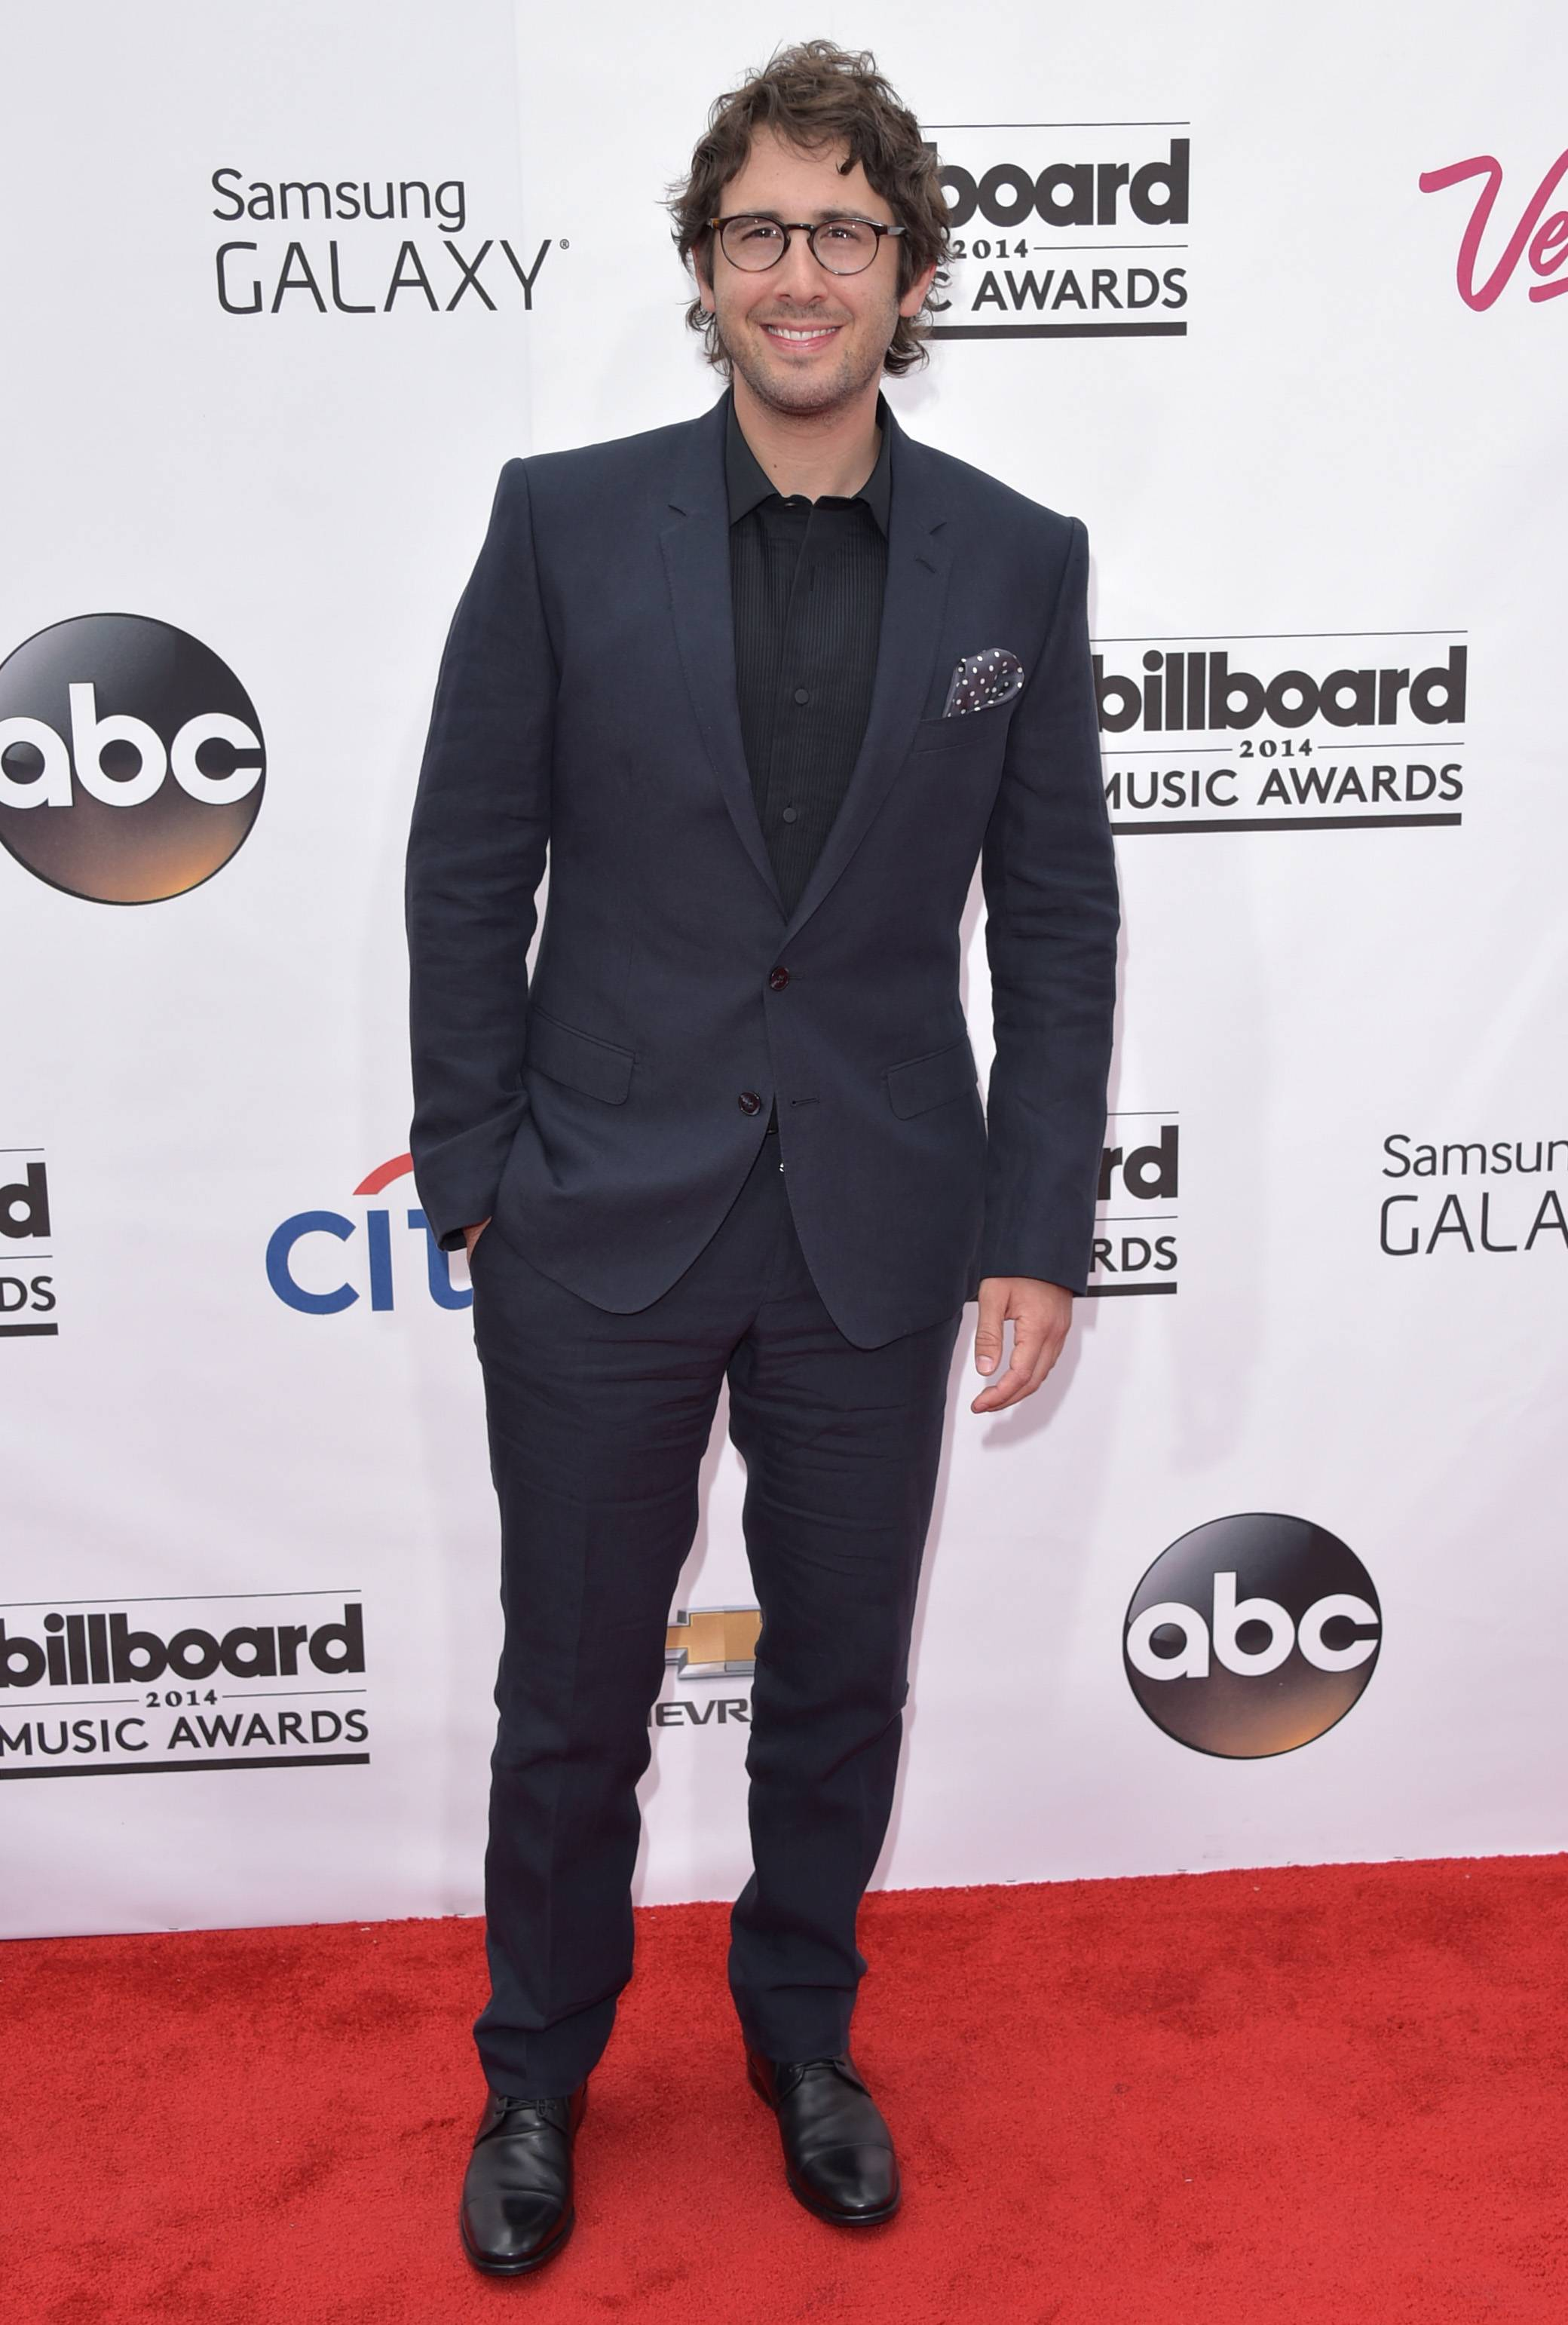 Singer Josh Groban arrives at the Billboard Music Awards at the MGM Grand Garden Arena on Sunday, May 18, 2014, in Las Vegas.